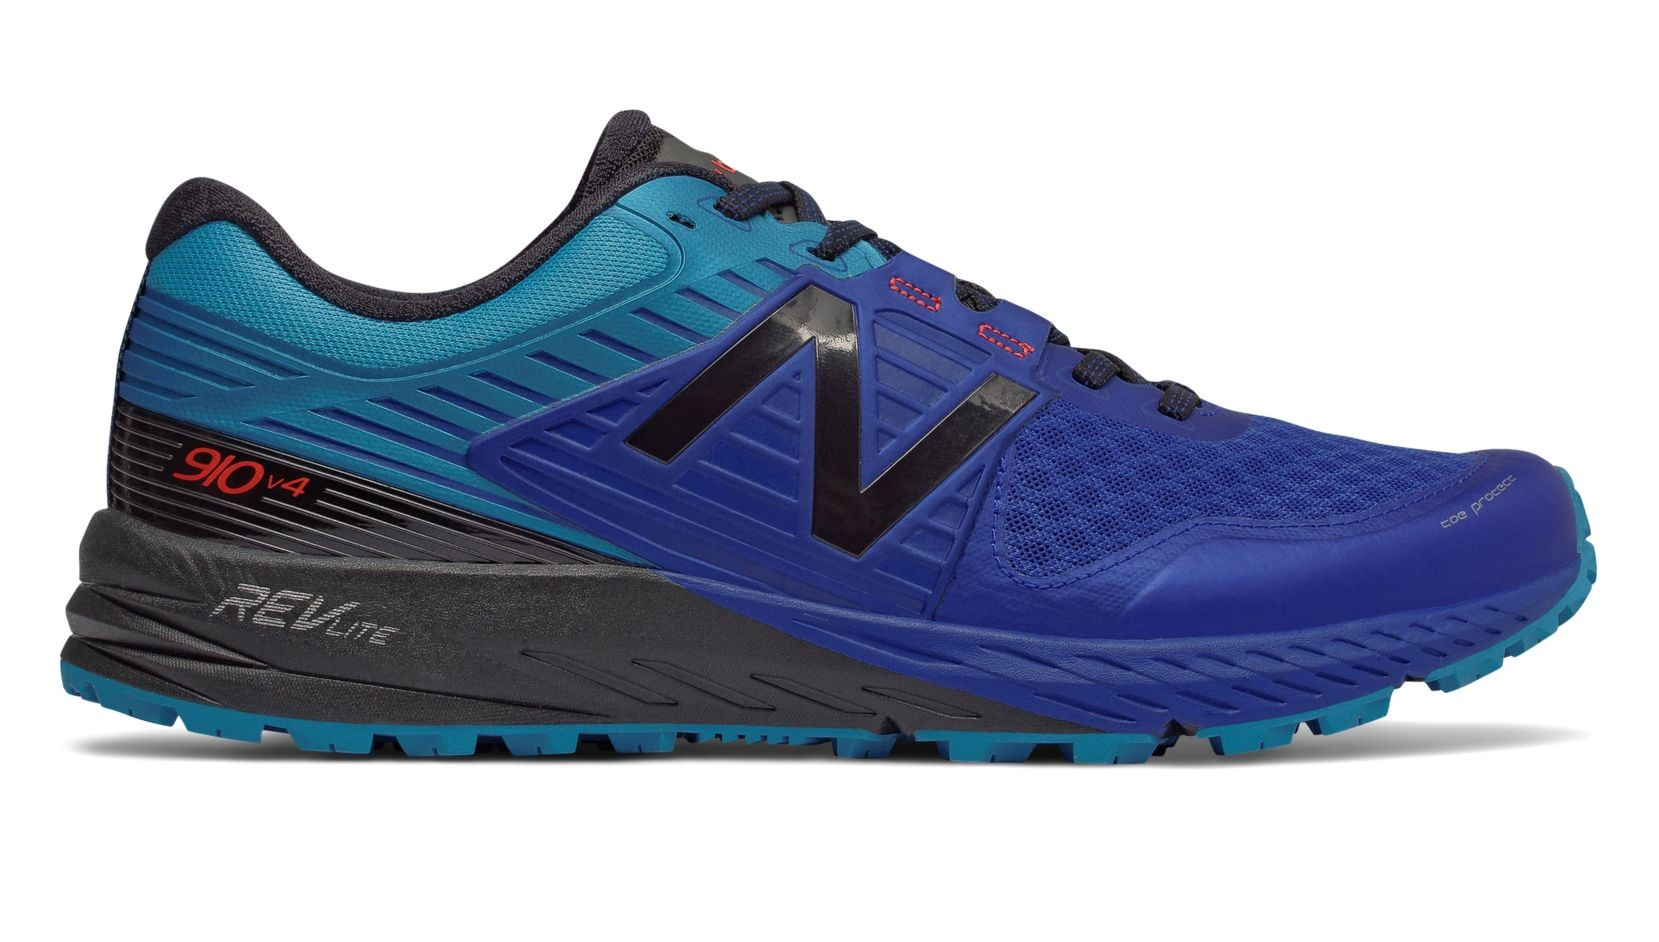 new balance 910v4 trail